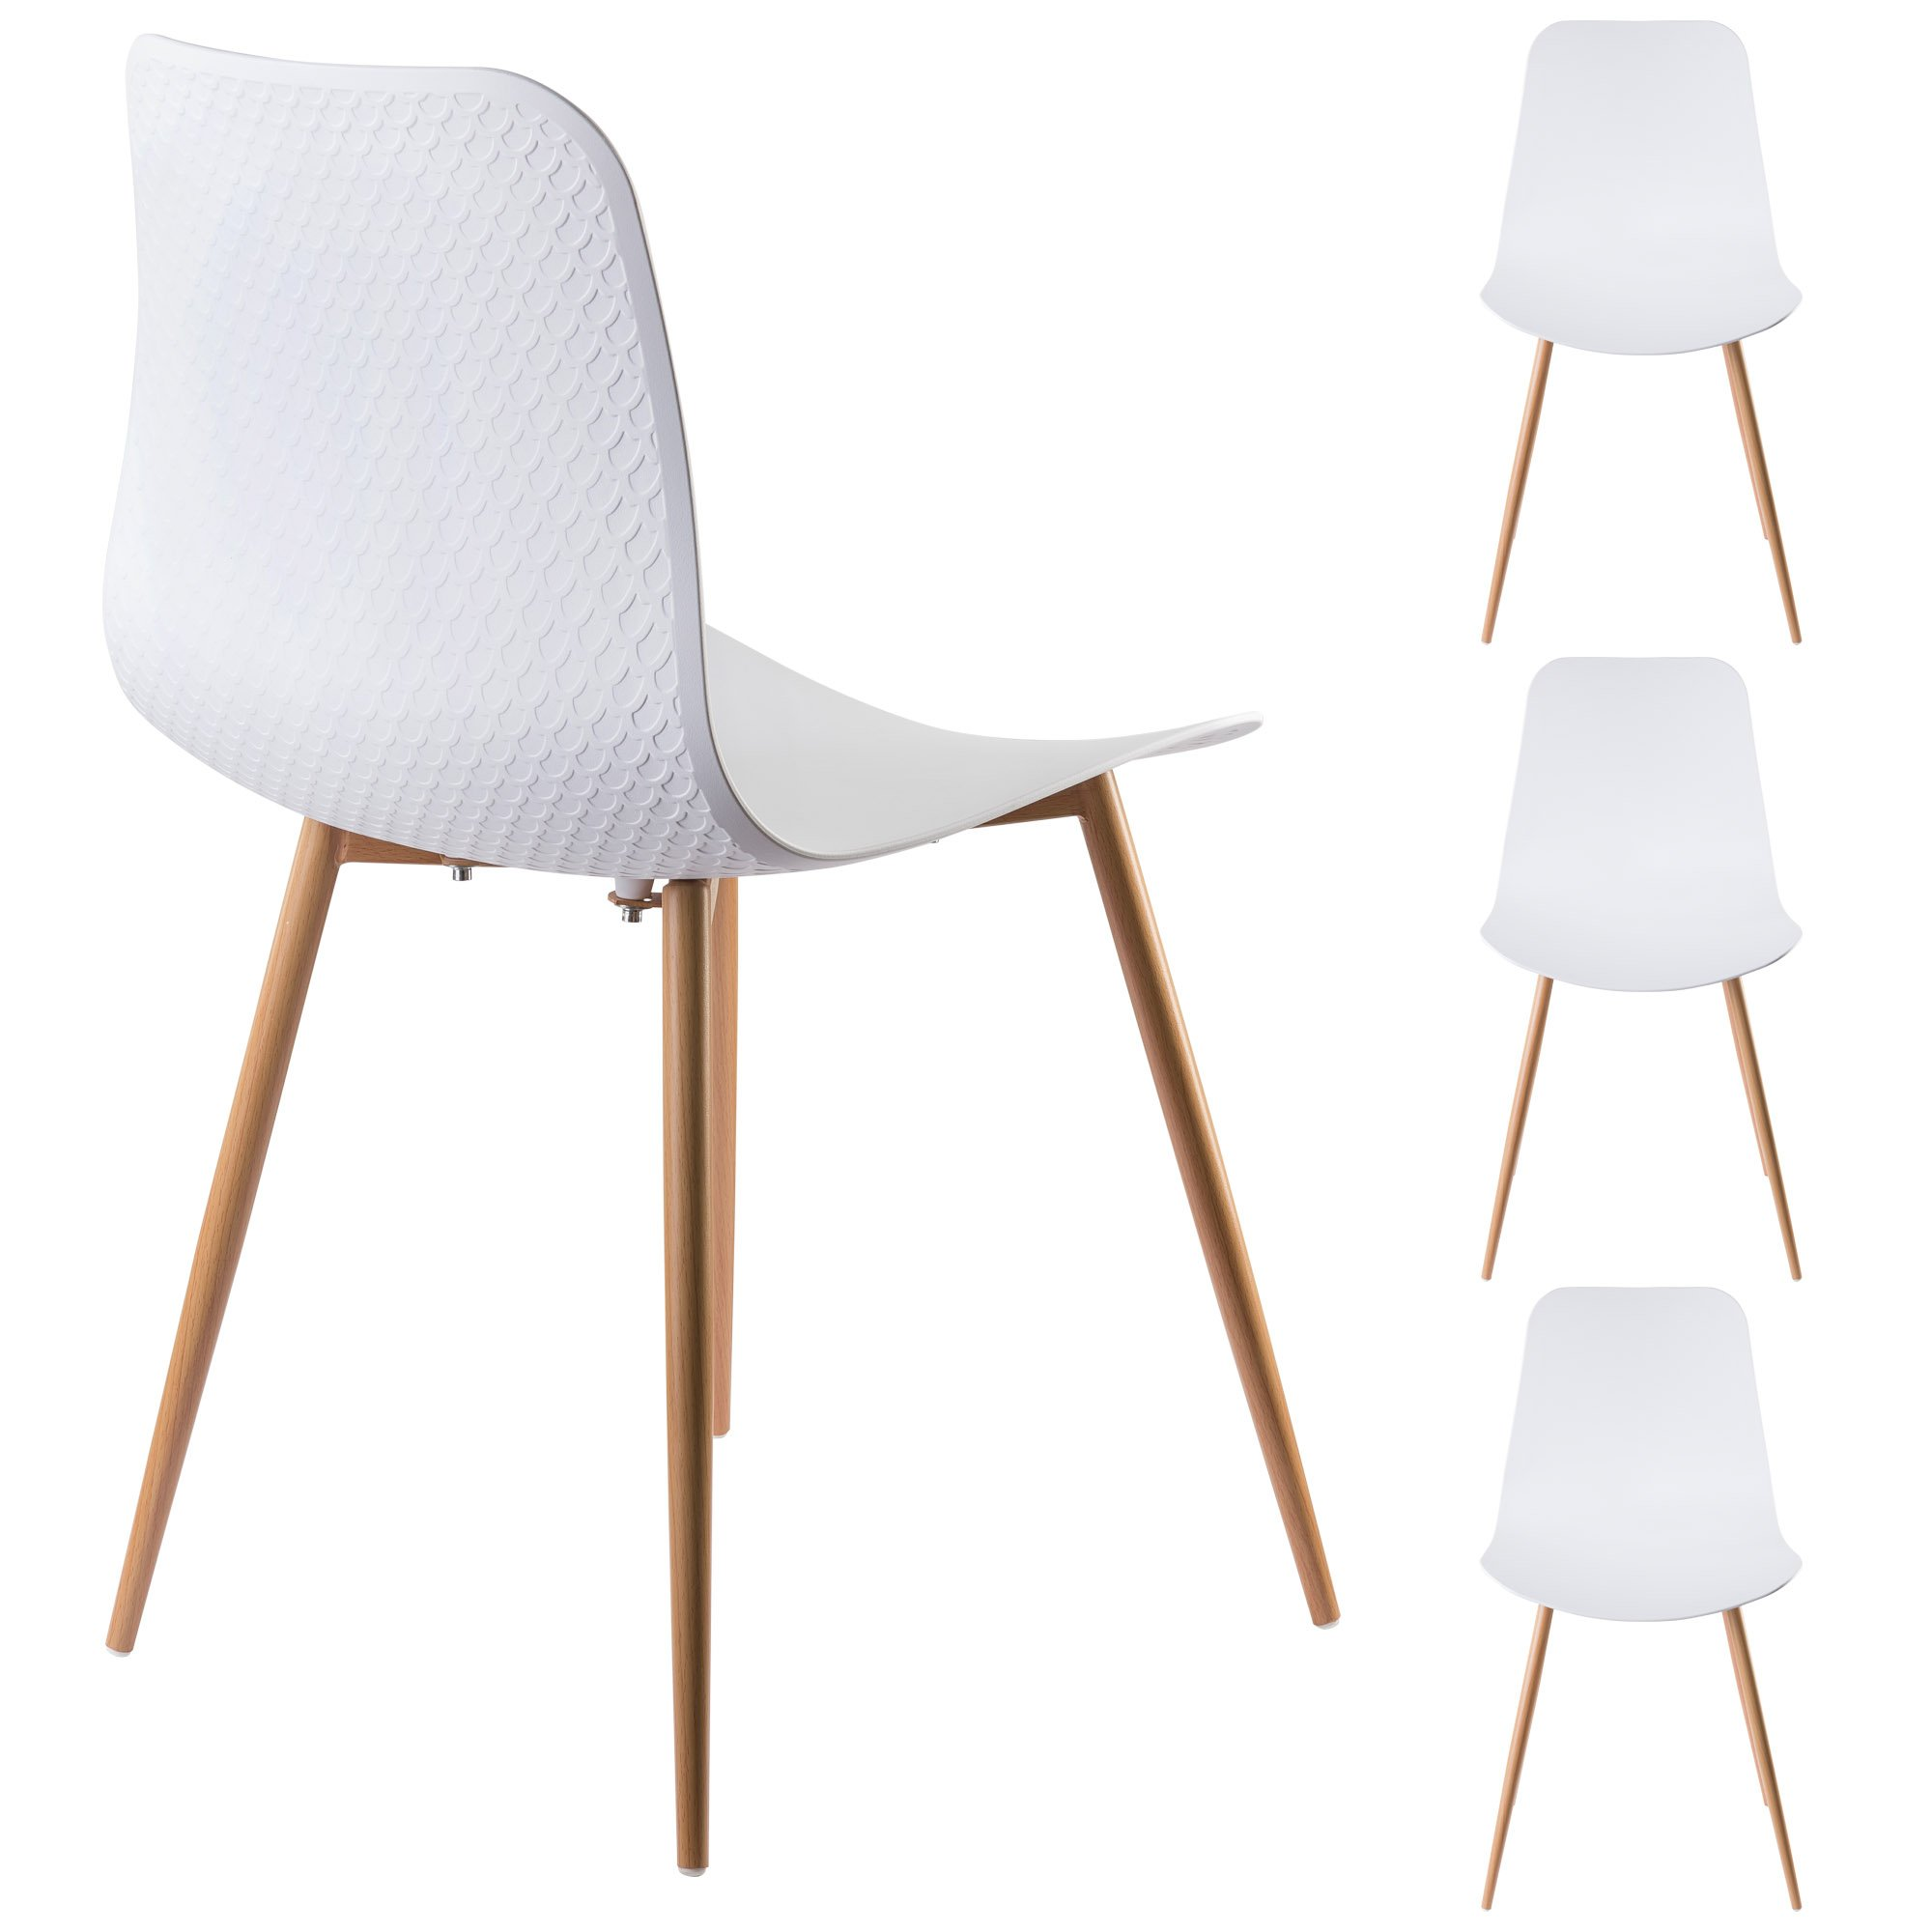 Viola Set of 4 White Dining Chairs - Mid Century Modern Style Armless Side Chairs Molded Easy Clean Plastic Shell with Wood Tone Legs by Linea di Liara LL-CH1658-WHITE